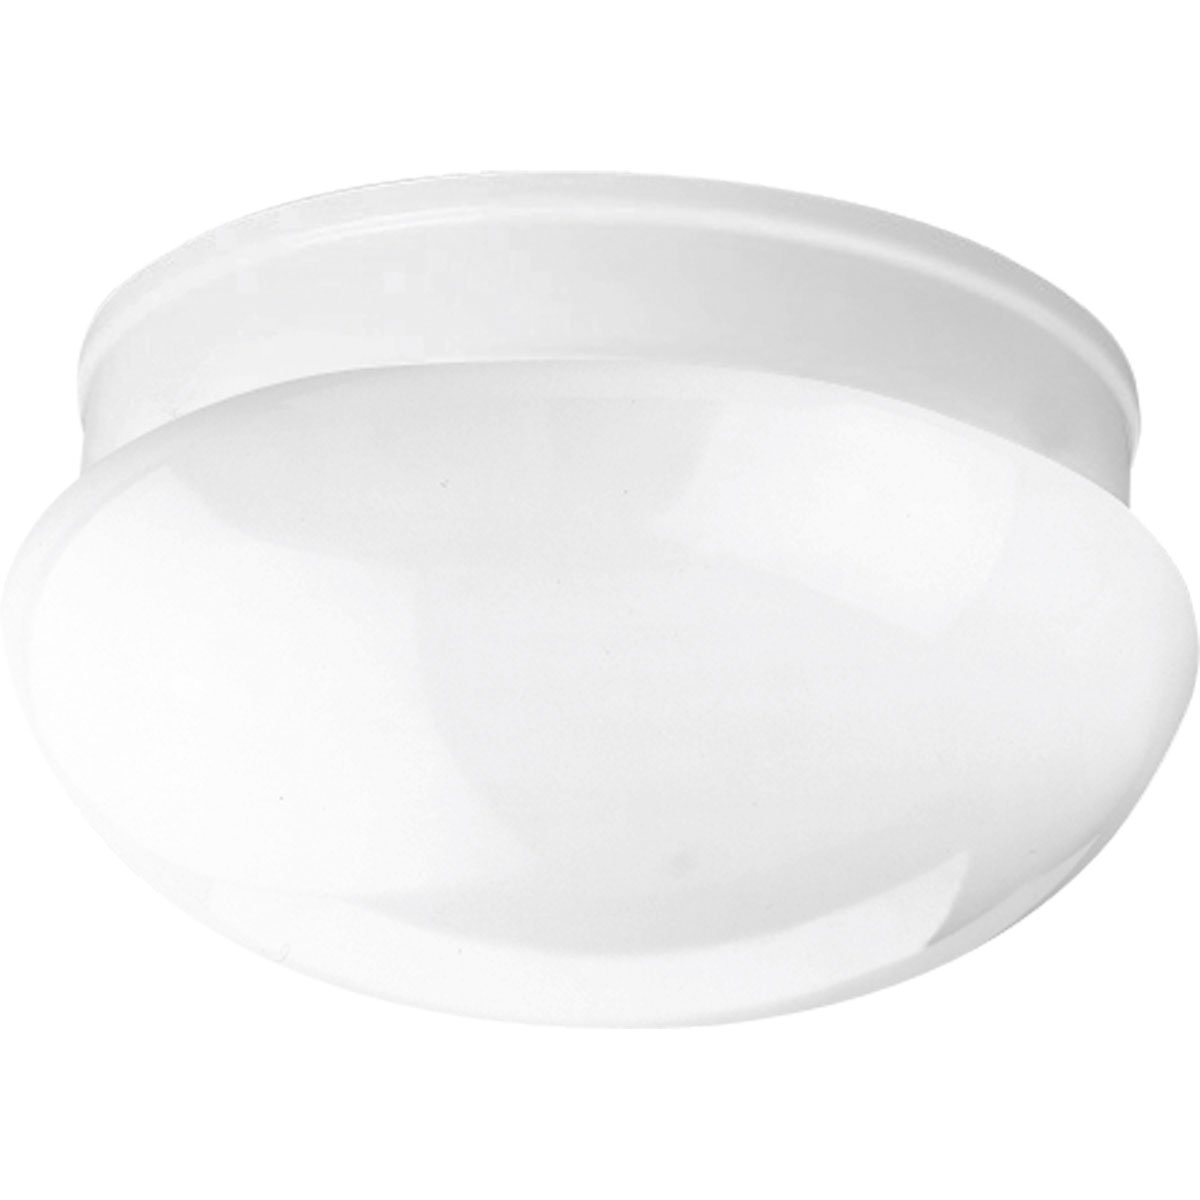 Progress Lighting P Light CloseToCeiling Fixture Brushed - Basic light fixture